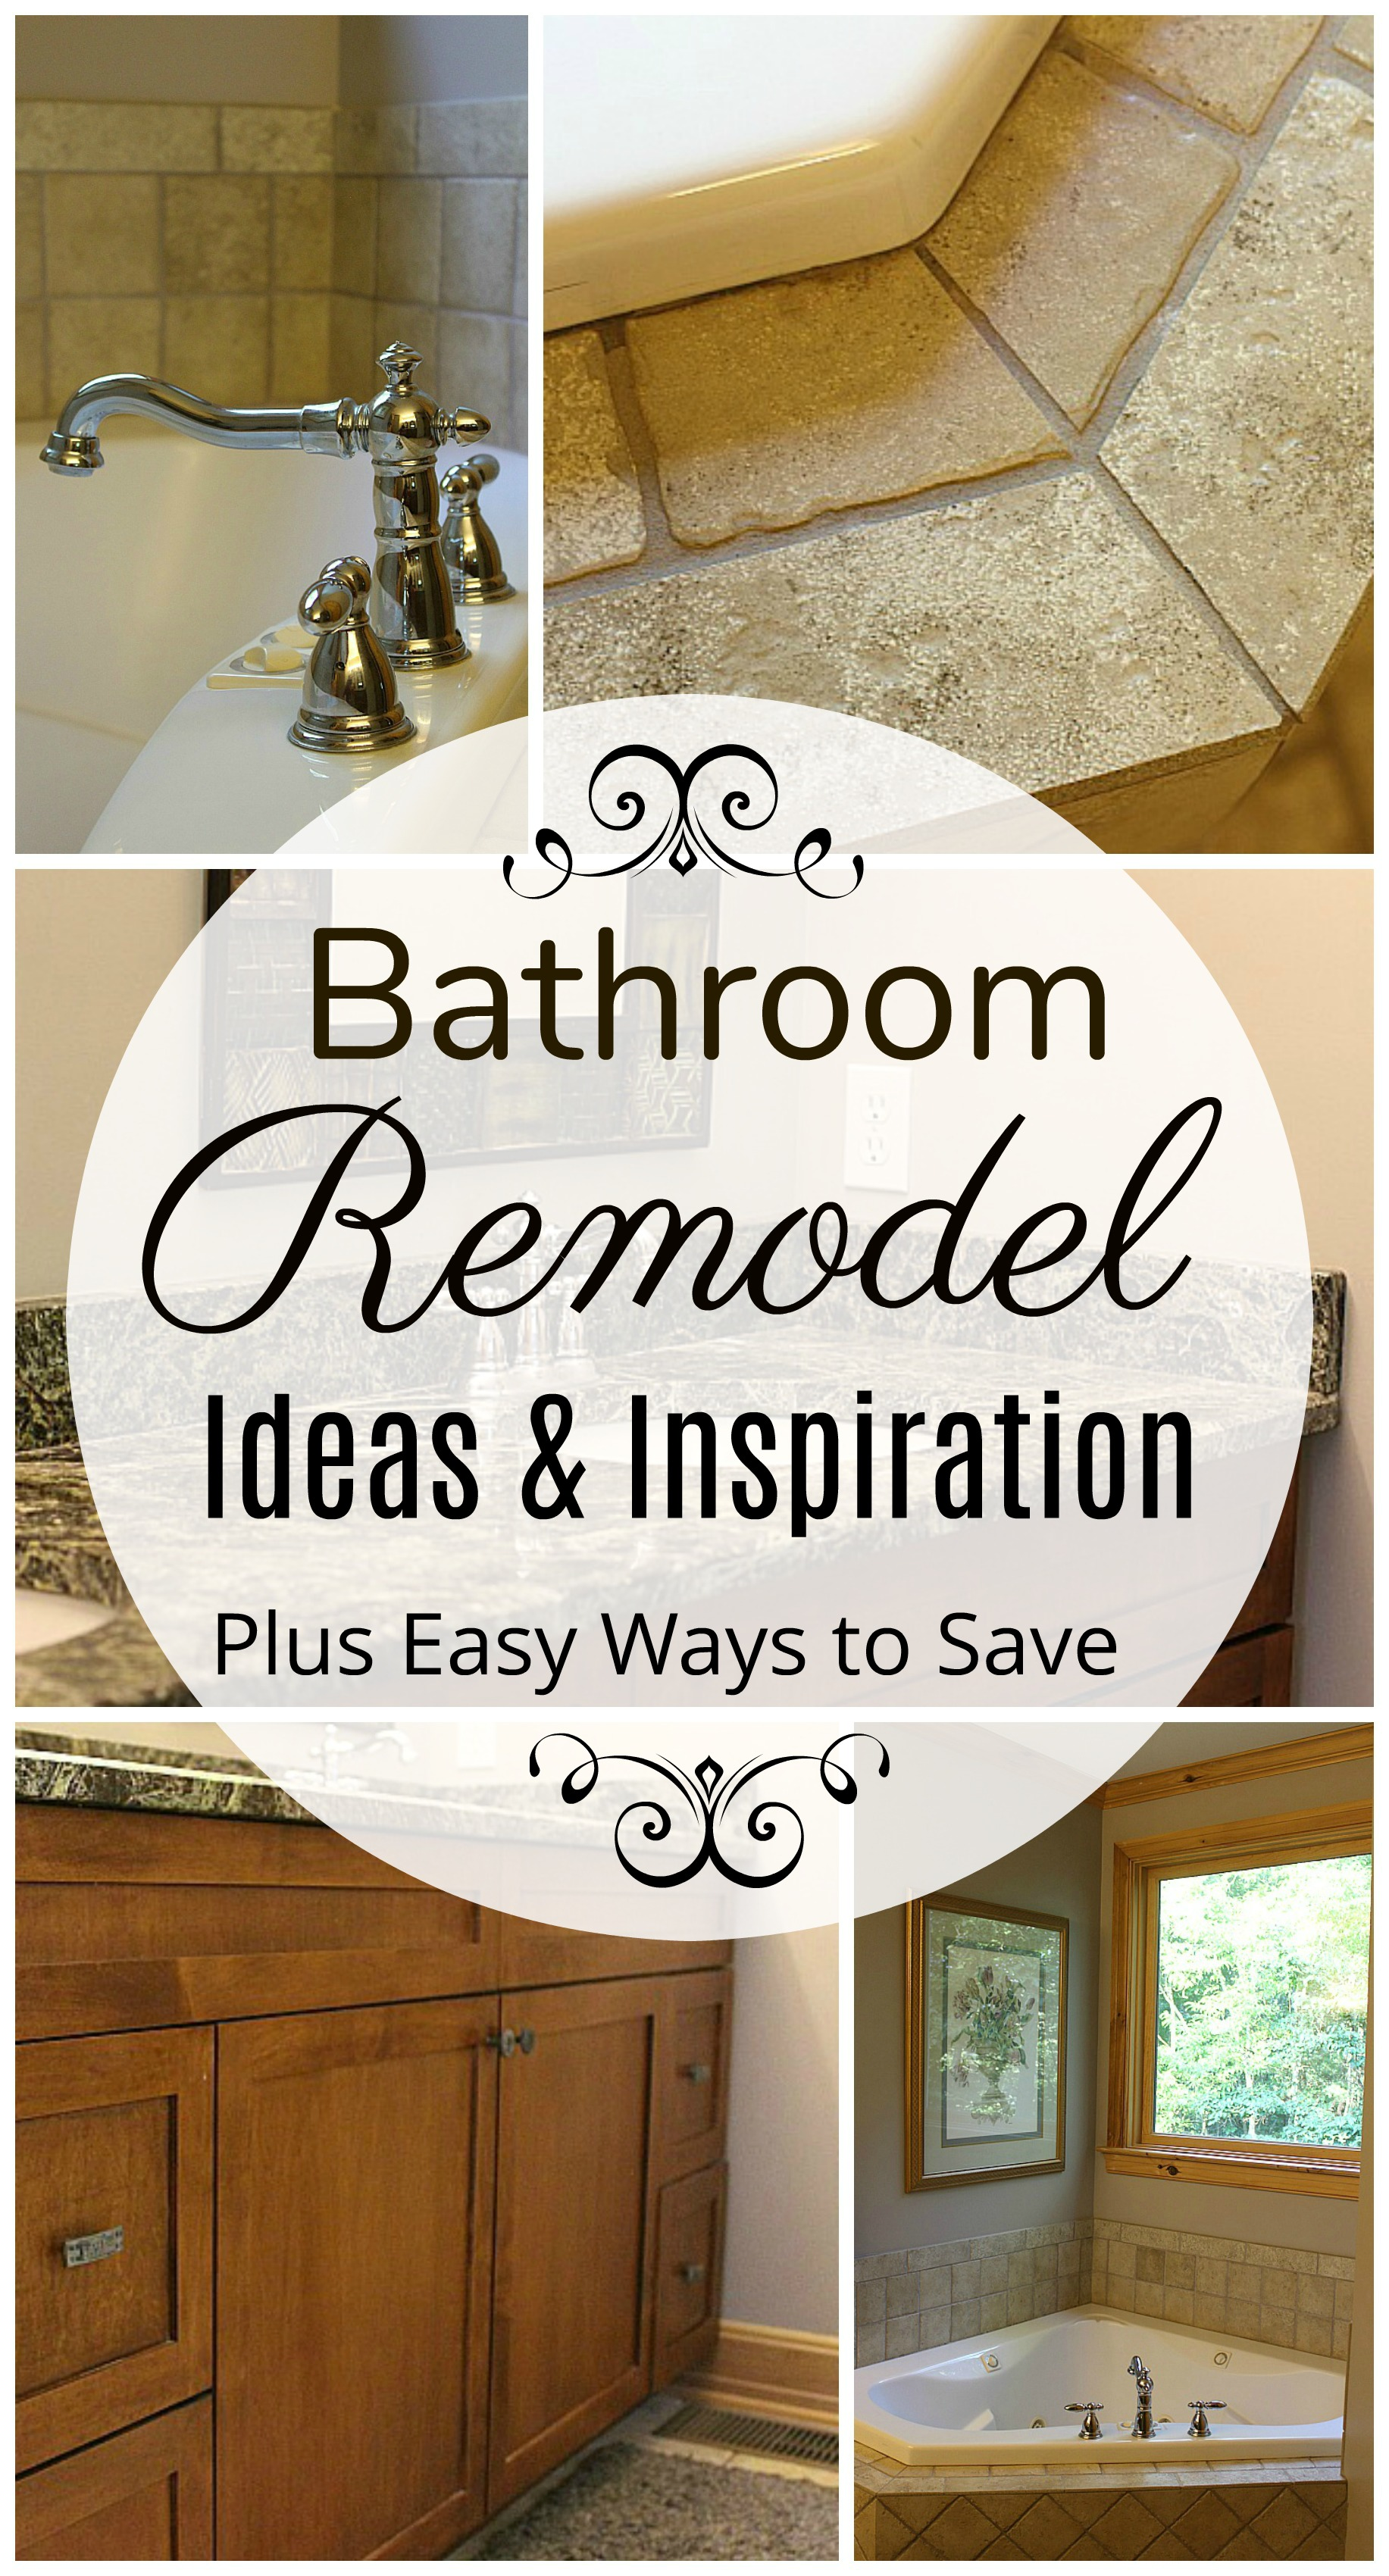 Bathroom remodel ideas inspiration the adventures of j for Bathroom renovation inspiration